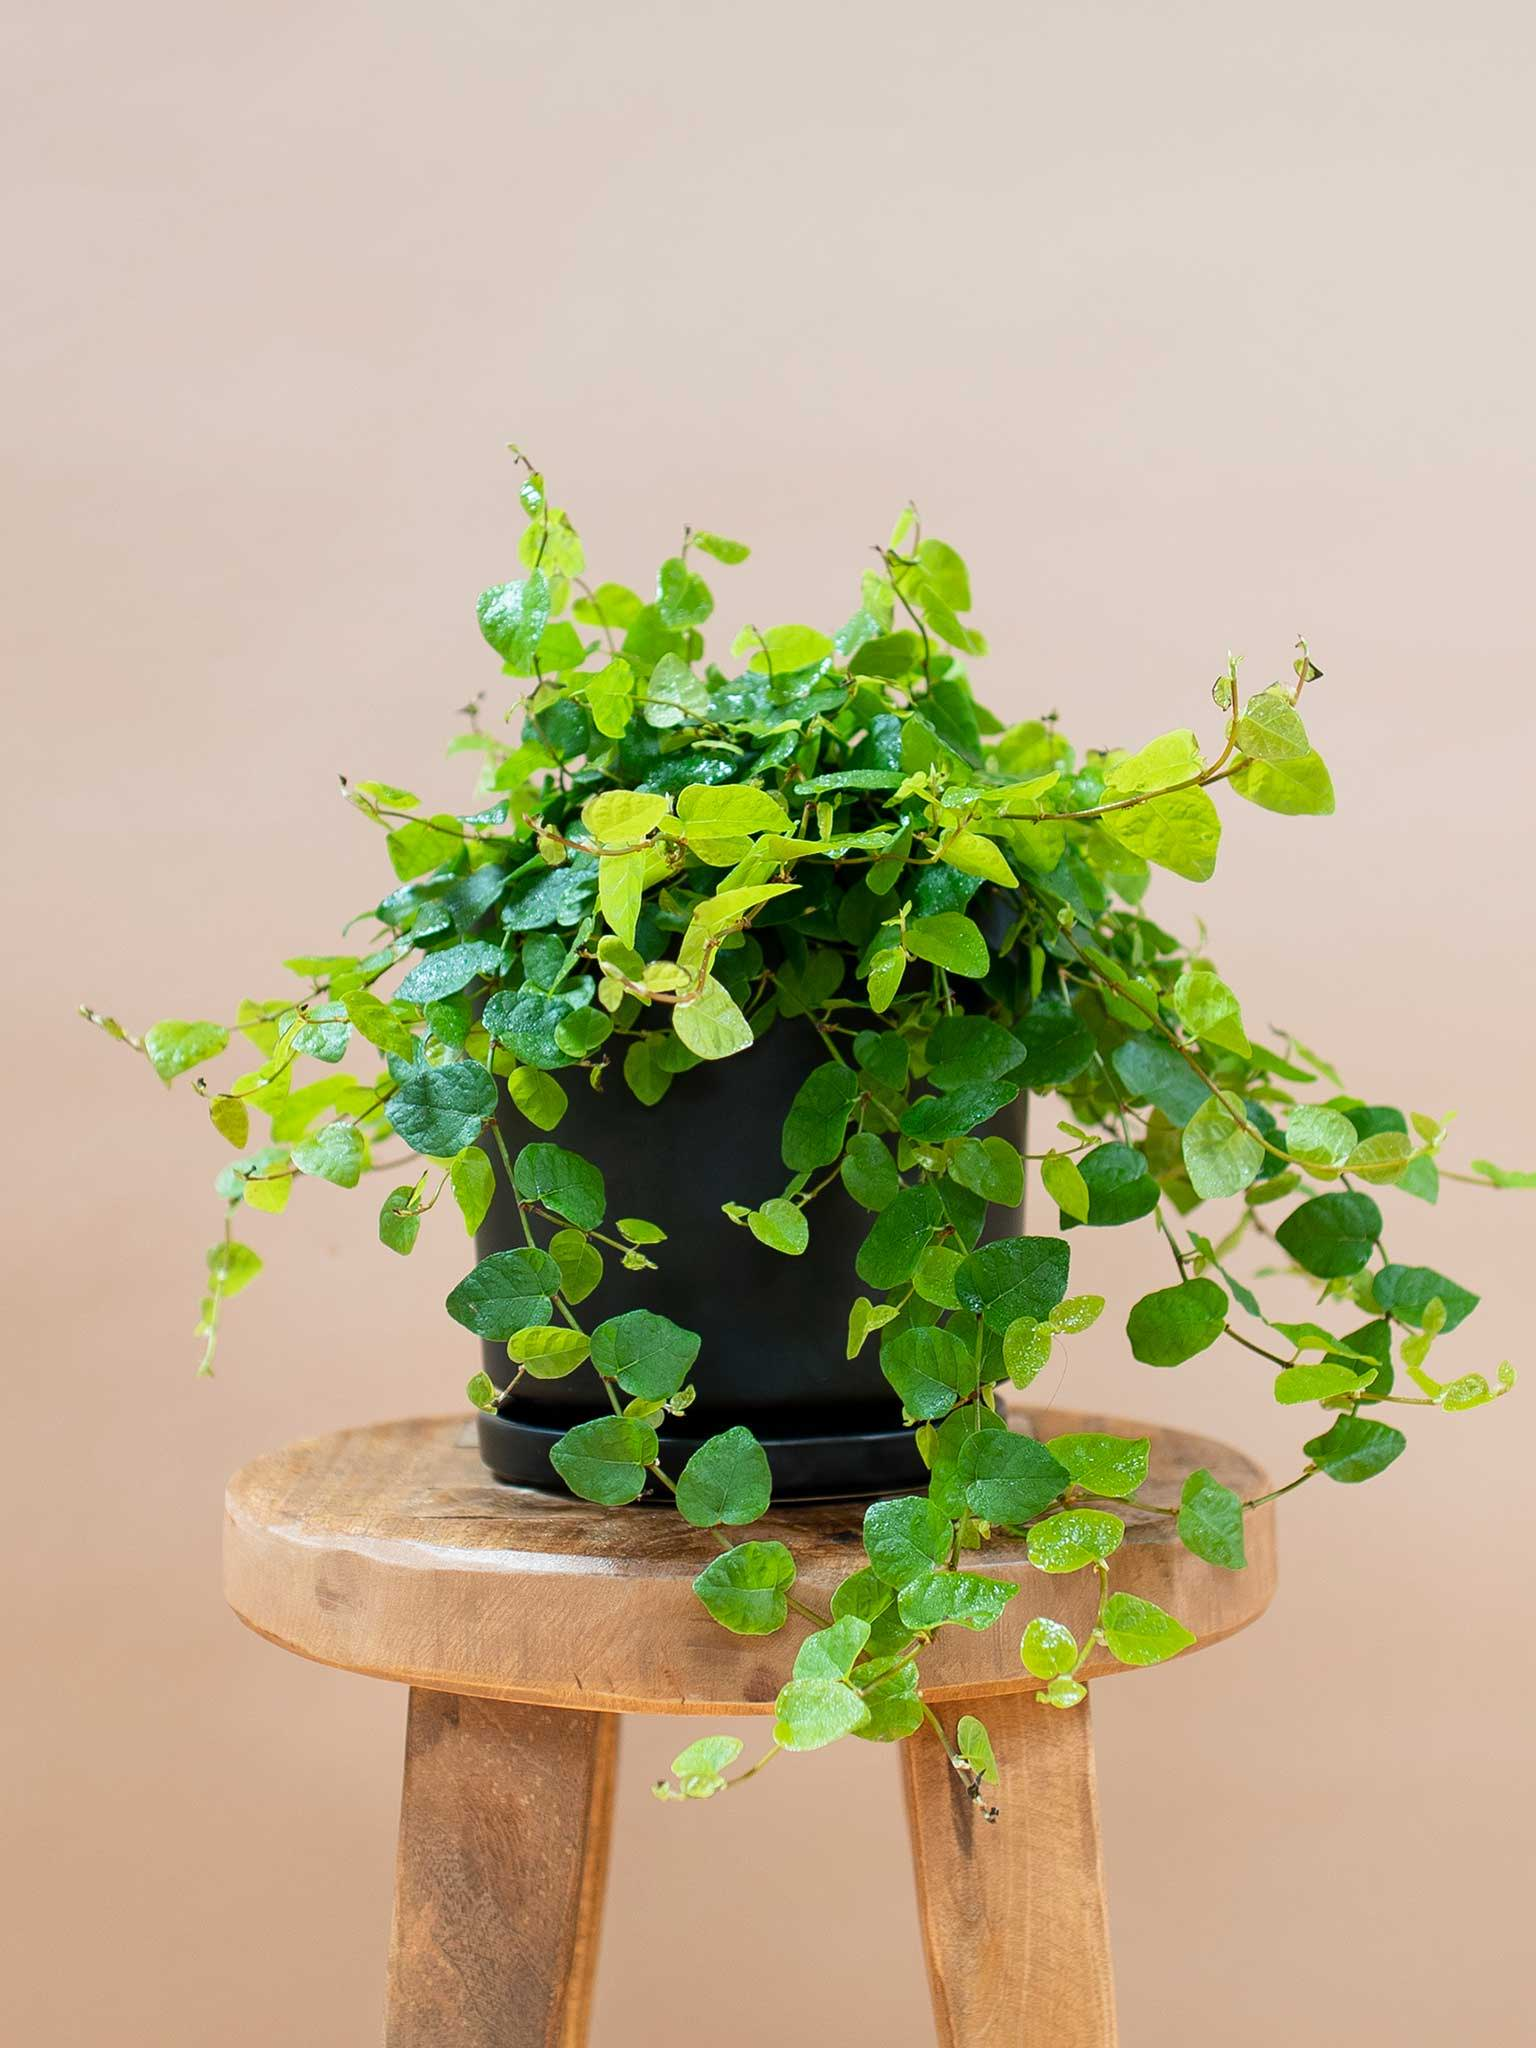 Creeping fig potted on a stool